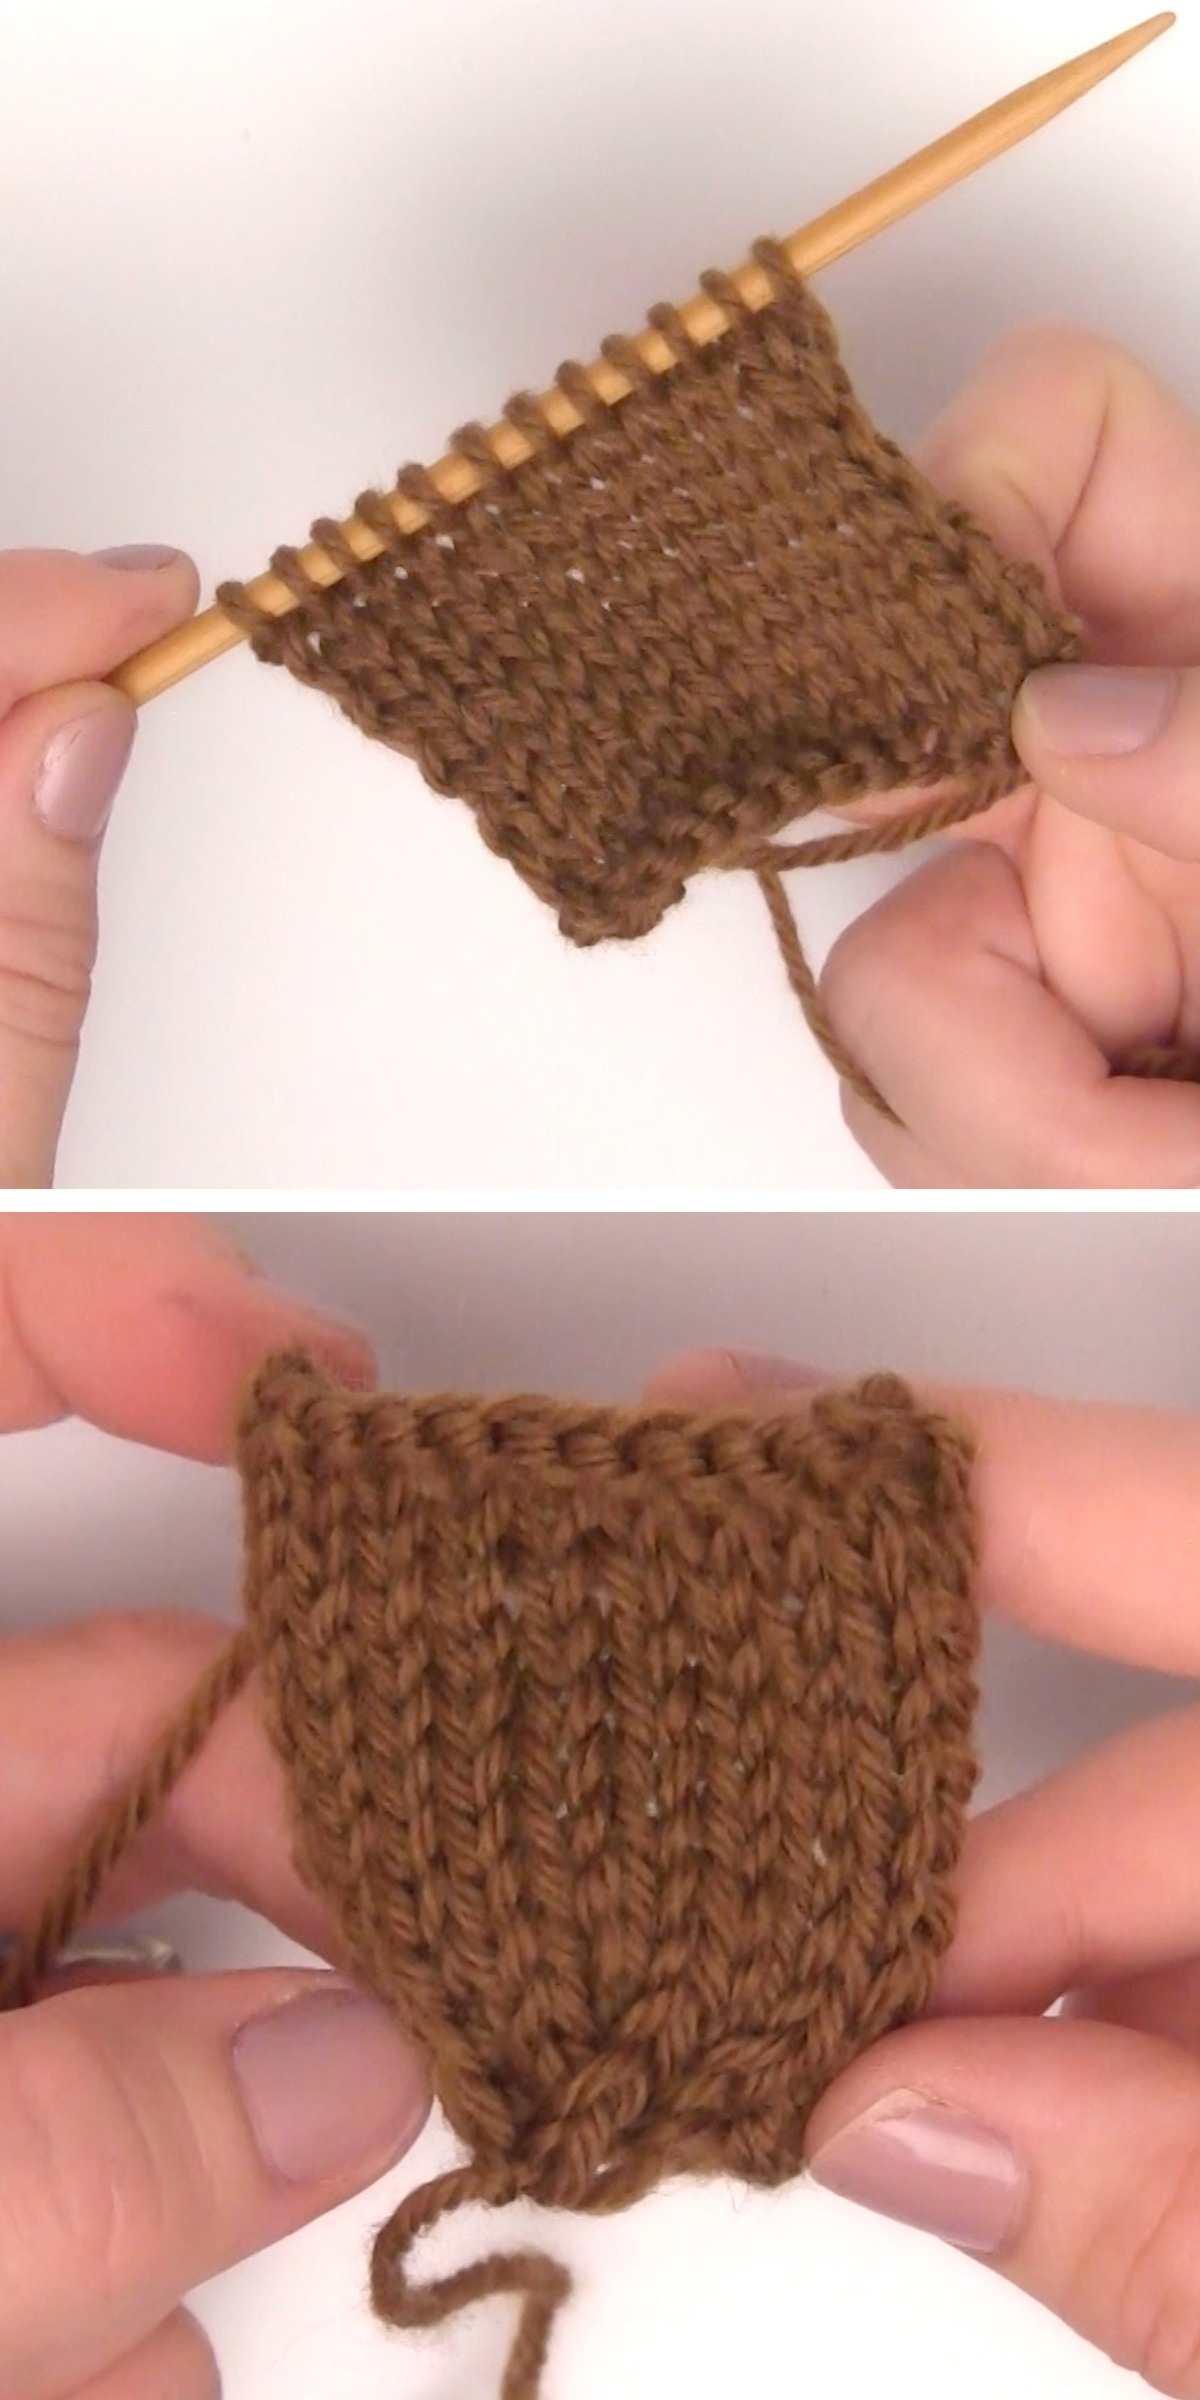 Stockinette stitch swatch of knitted acorn body in brown color yarn.